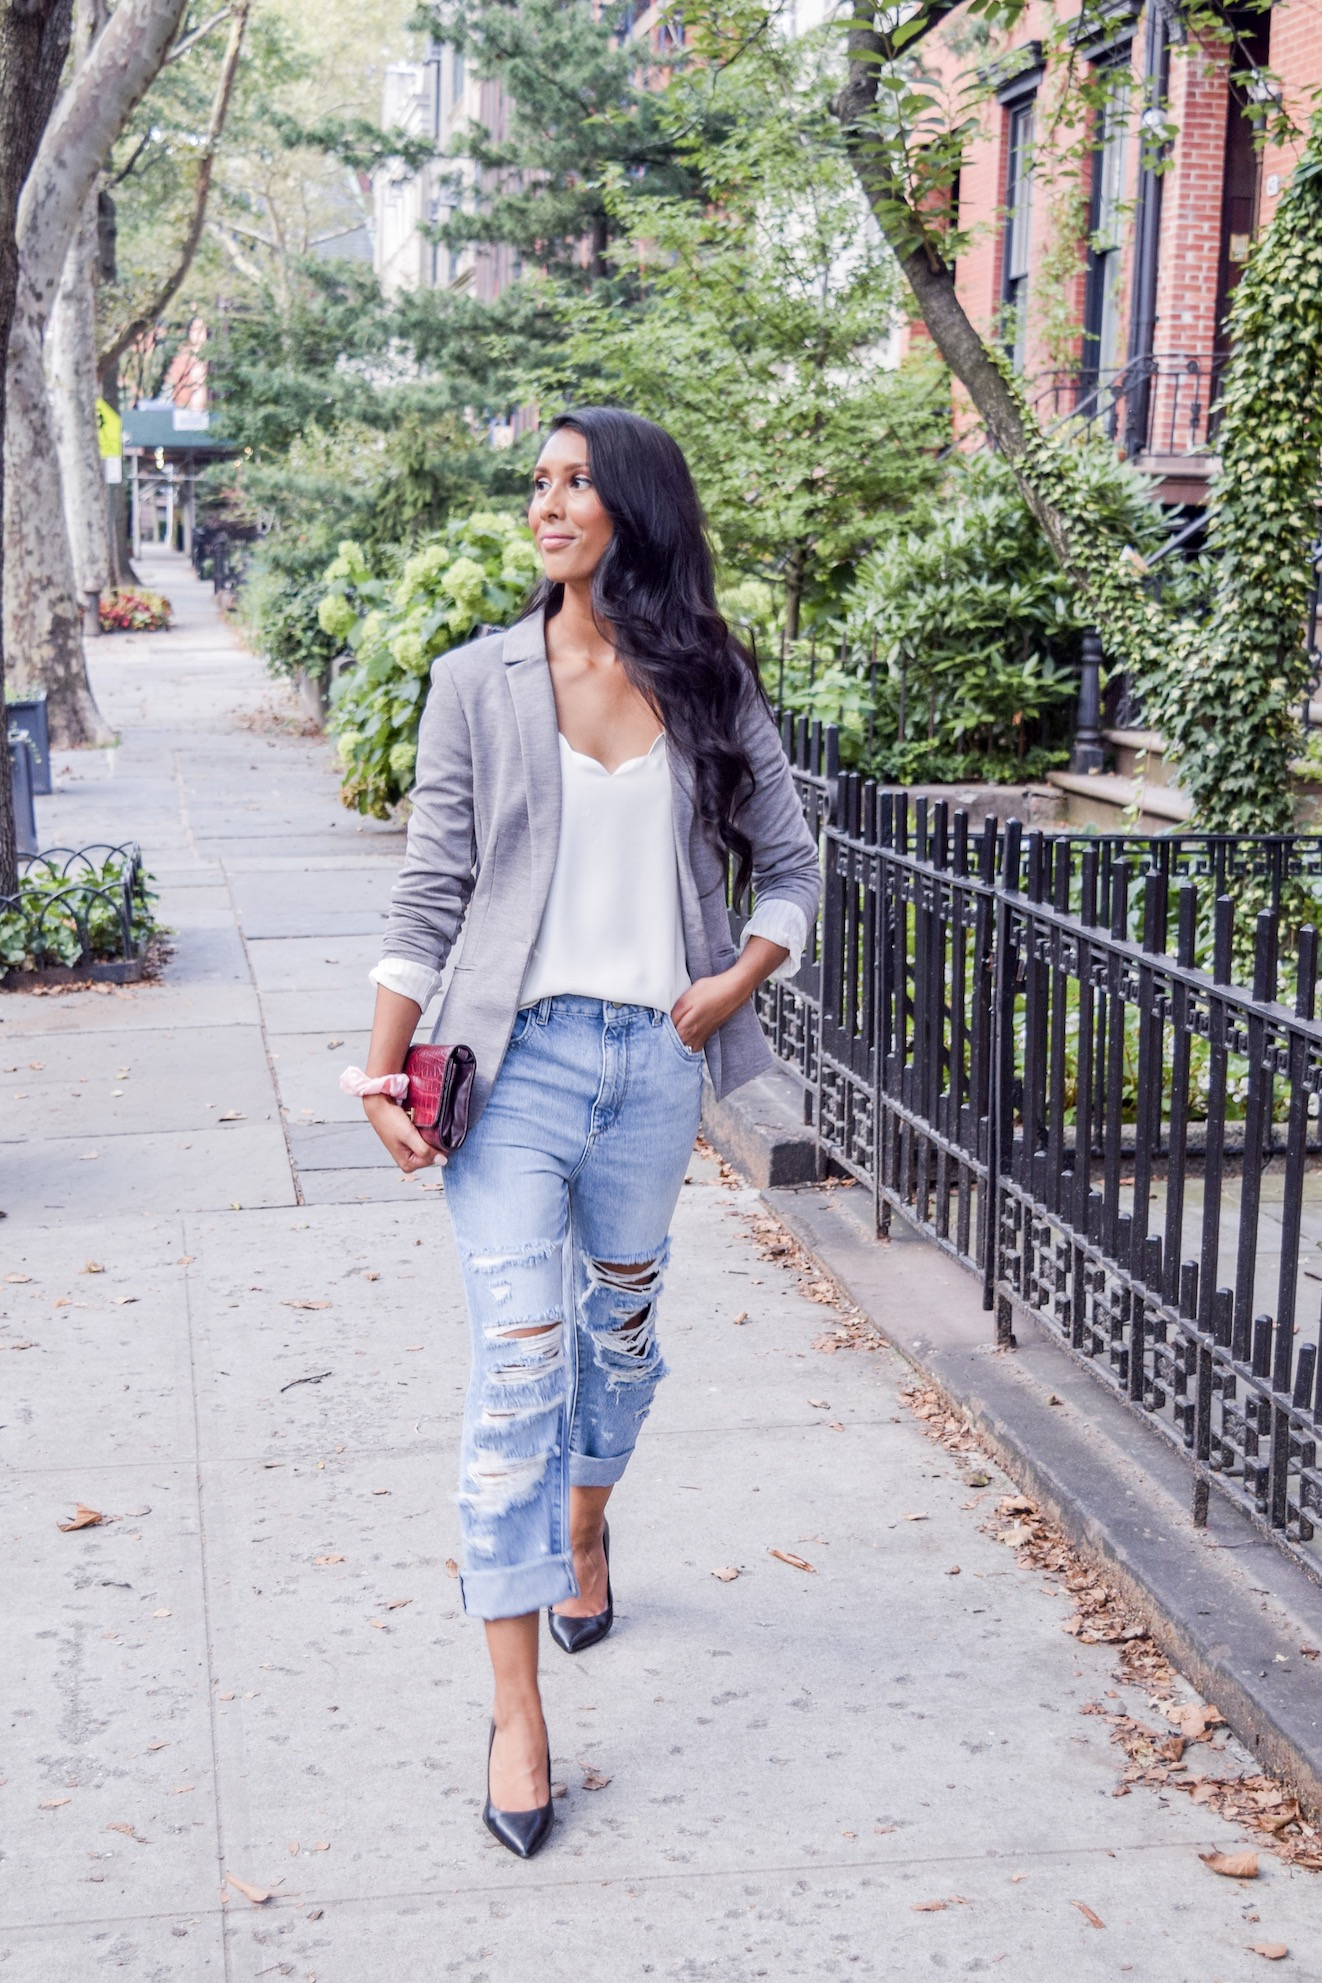 Casual day to night outfit  // A Week Of Conscious Trend-Forward Outfits With Sabrina Ramkhelawan From Flaunt Your Fancy on The Good Trade